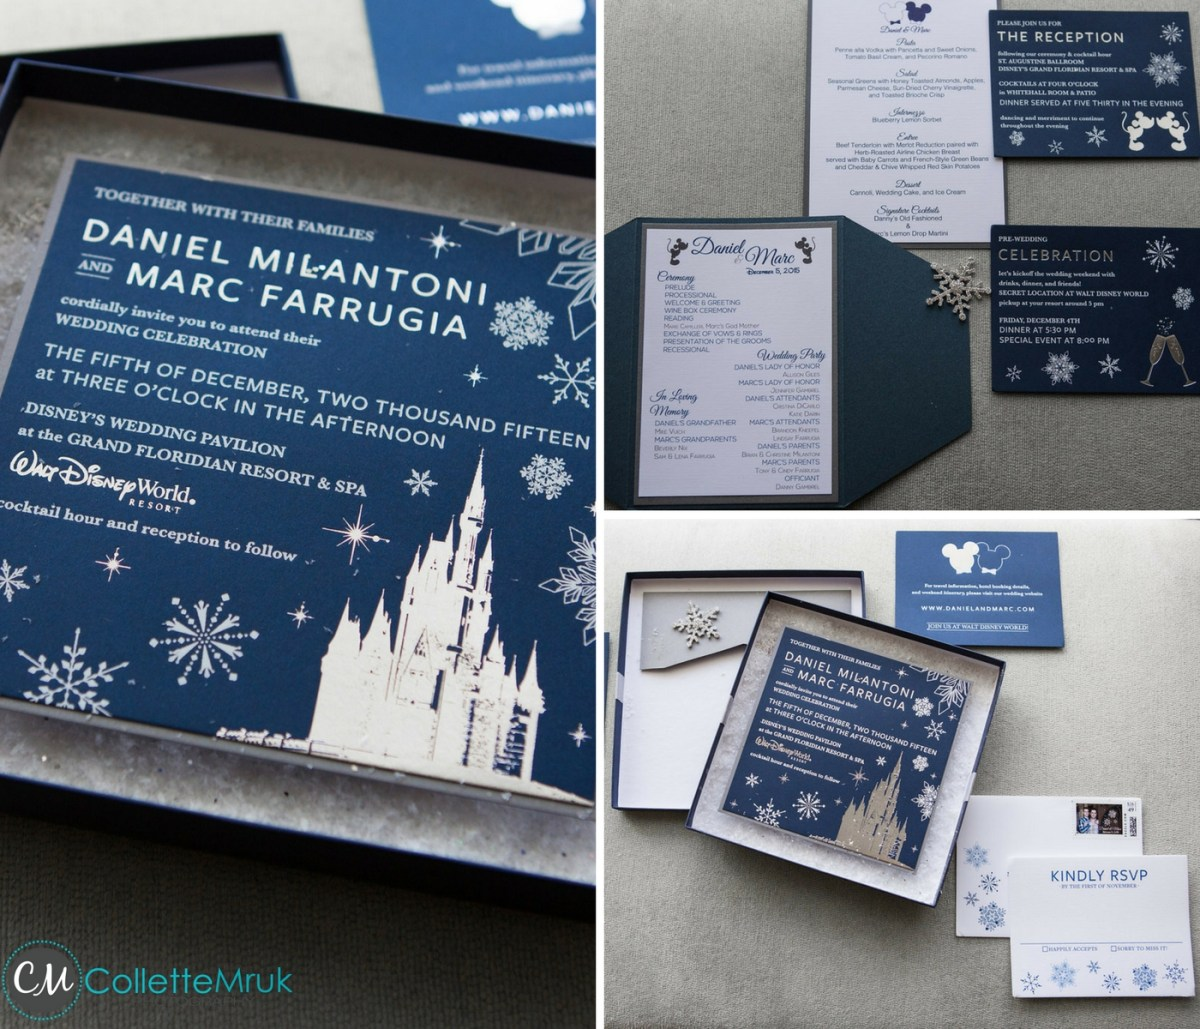 Disney Wedding Invitations Collette Mruk Photography Disney Wedding Invitations